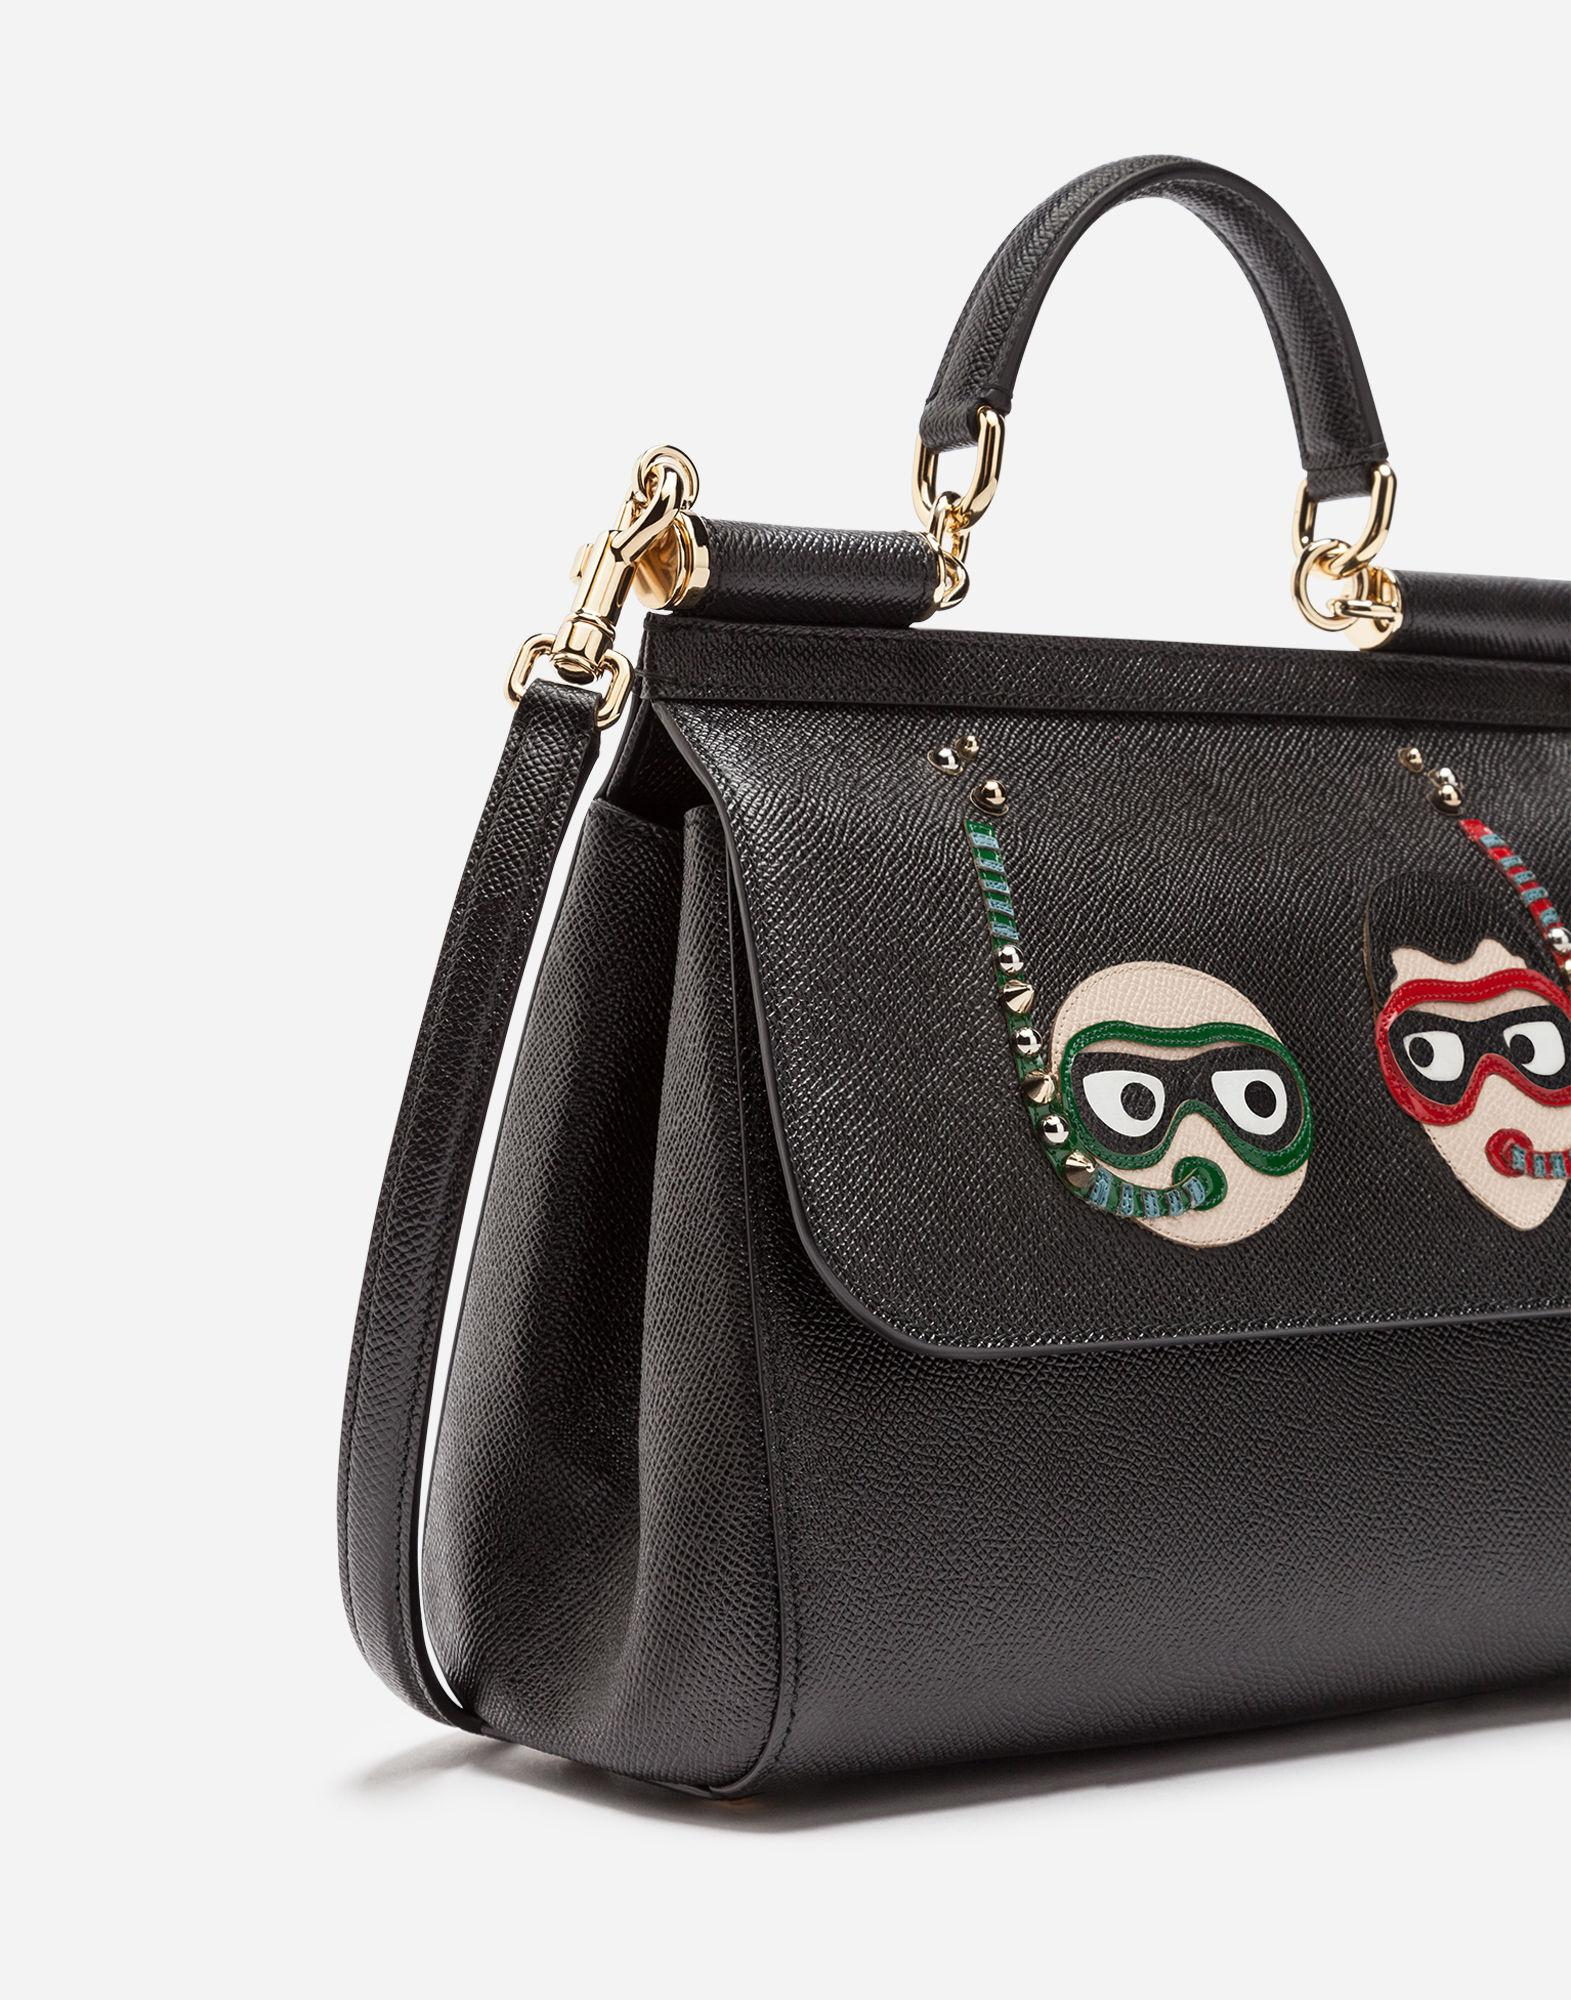 Lyst - Dolce   Gabbana Medium Sicily Bag In Dauphine Calfskin With Patches  Of The Designers in Black 787f9d1b42c75